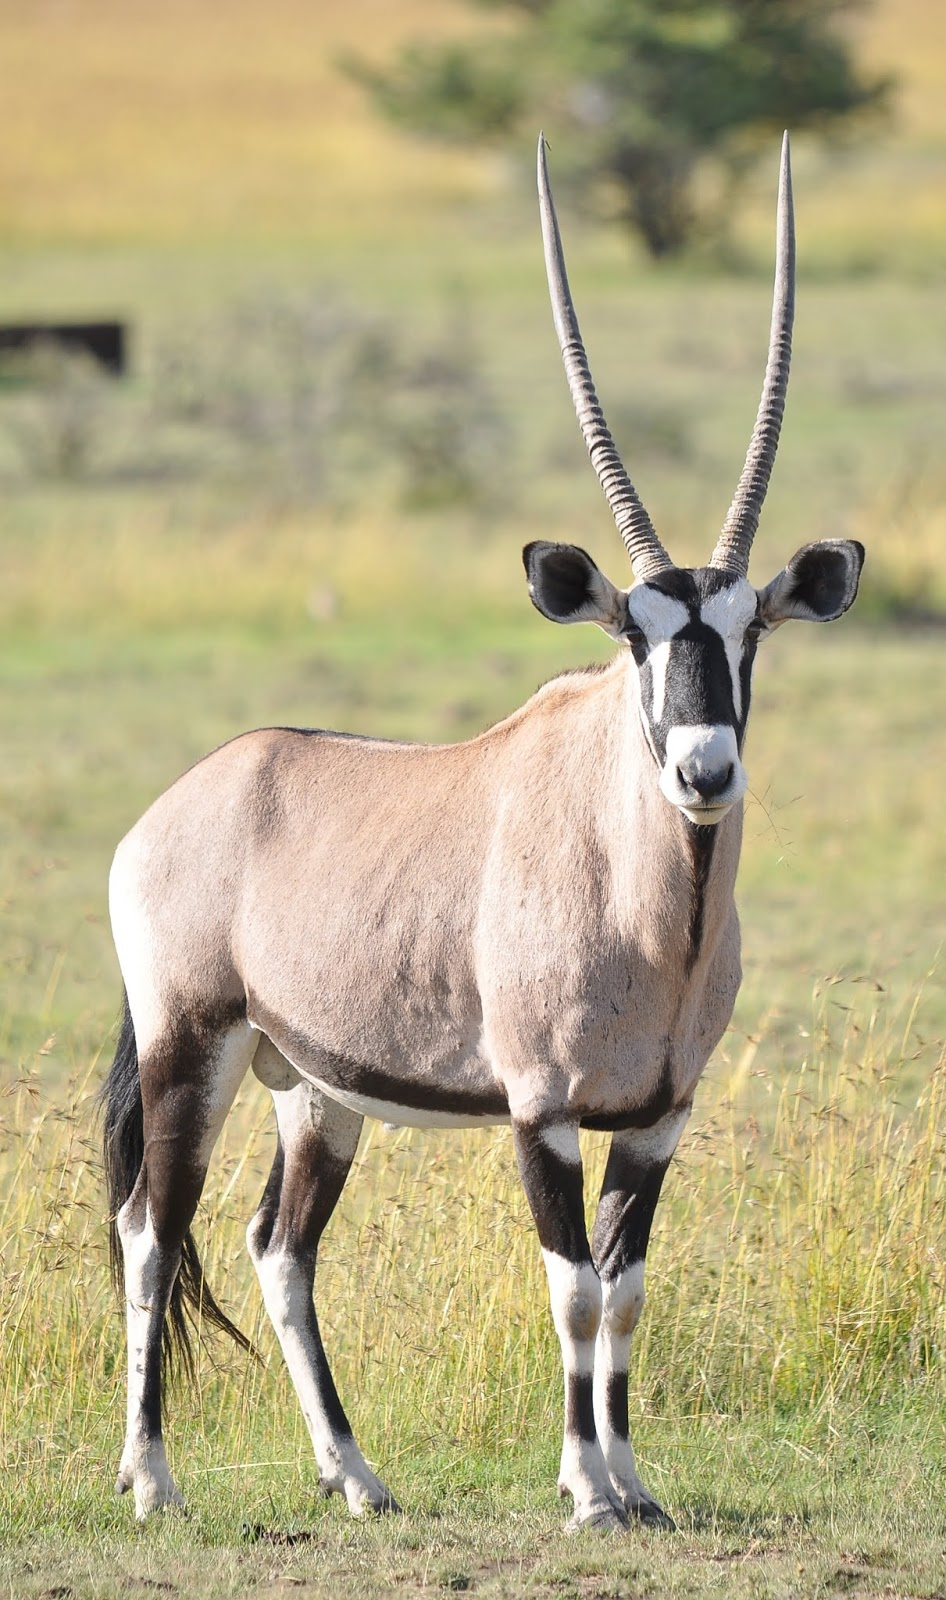 A majestic antelope on the Savannah plains.